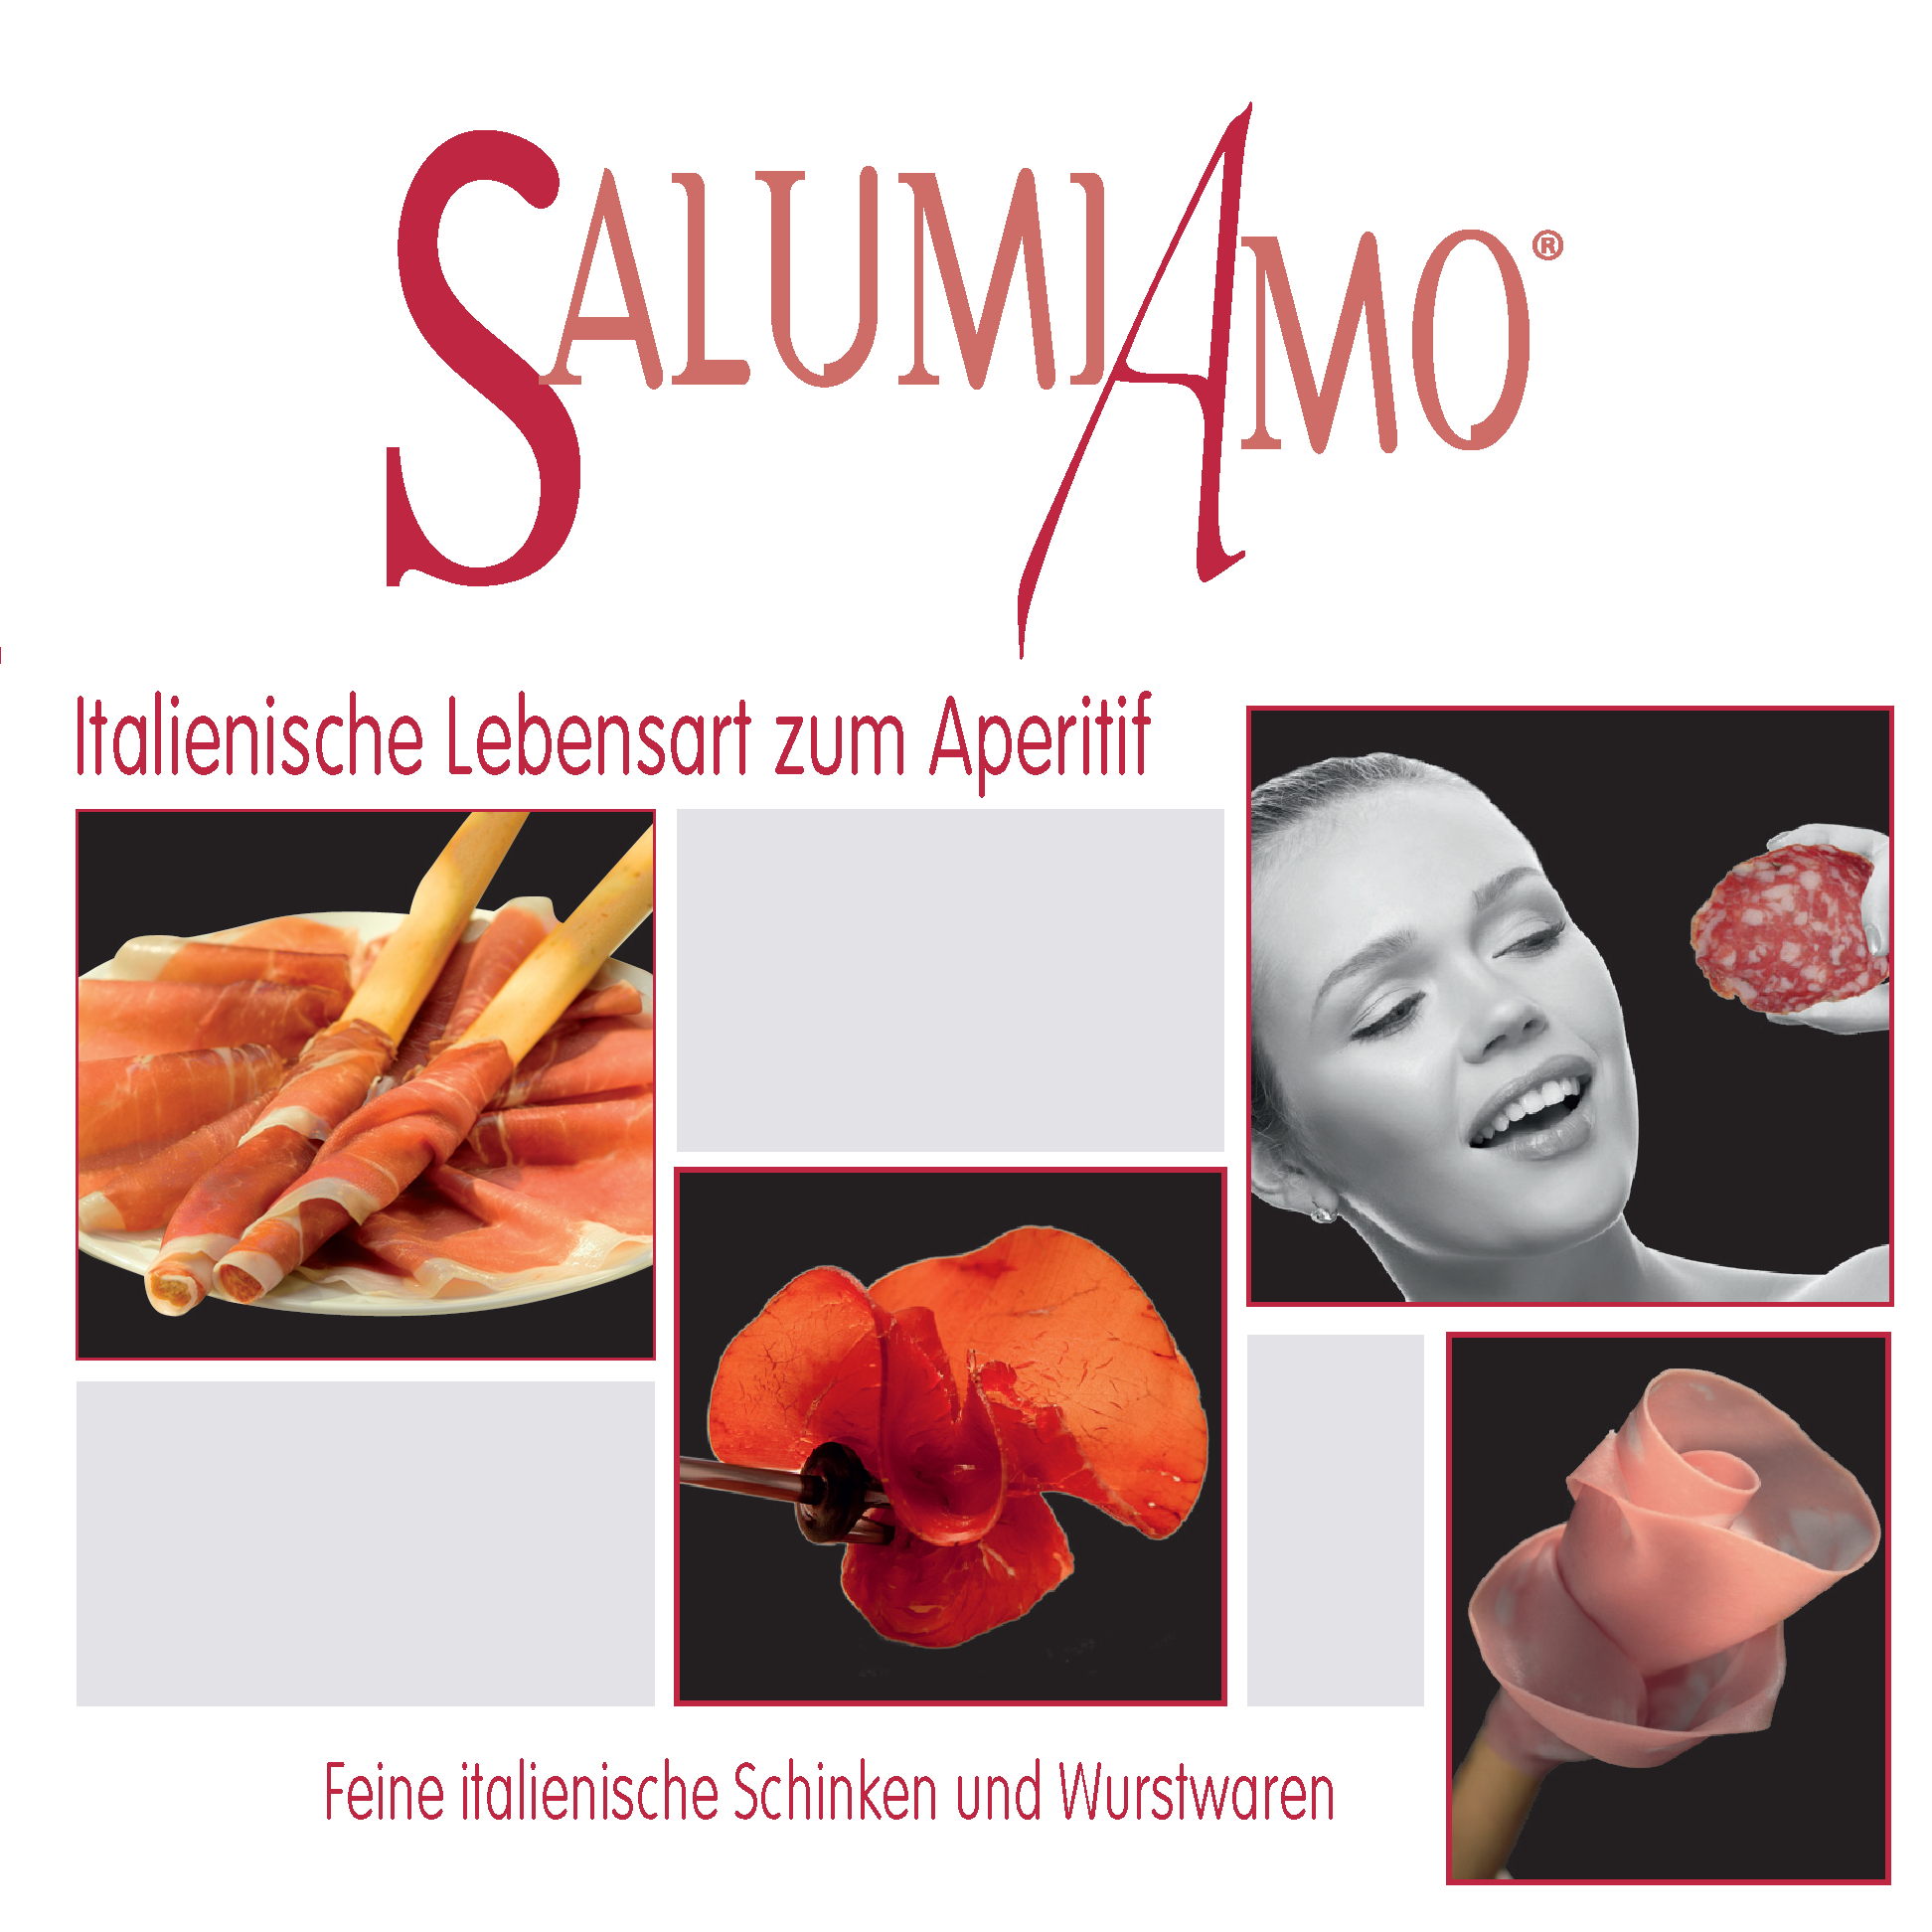 SalumiAmo Germania (2011)